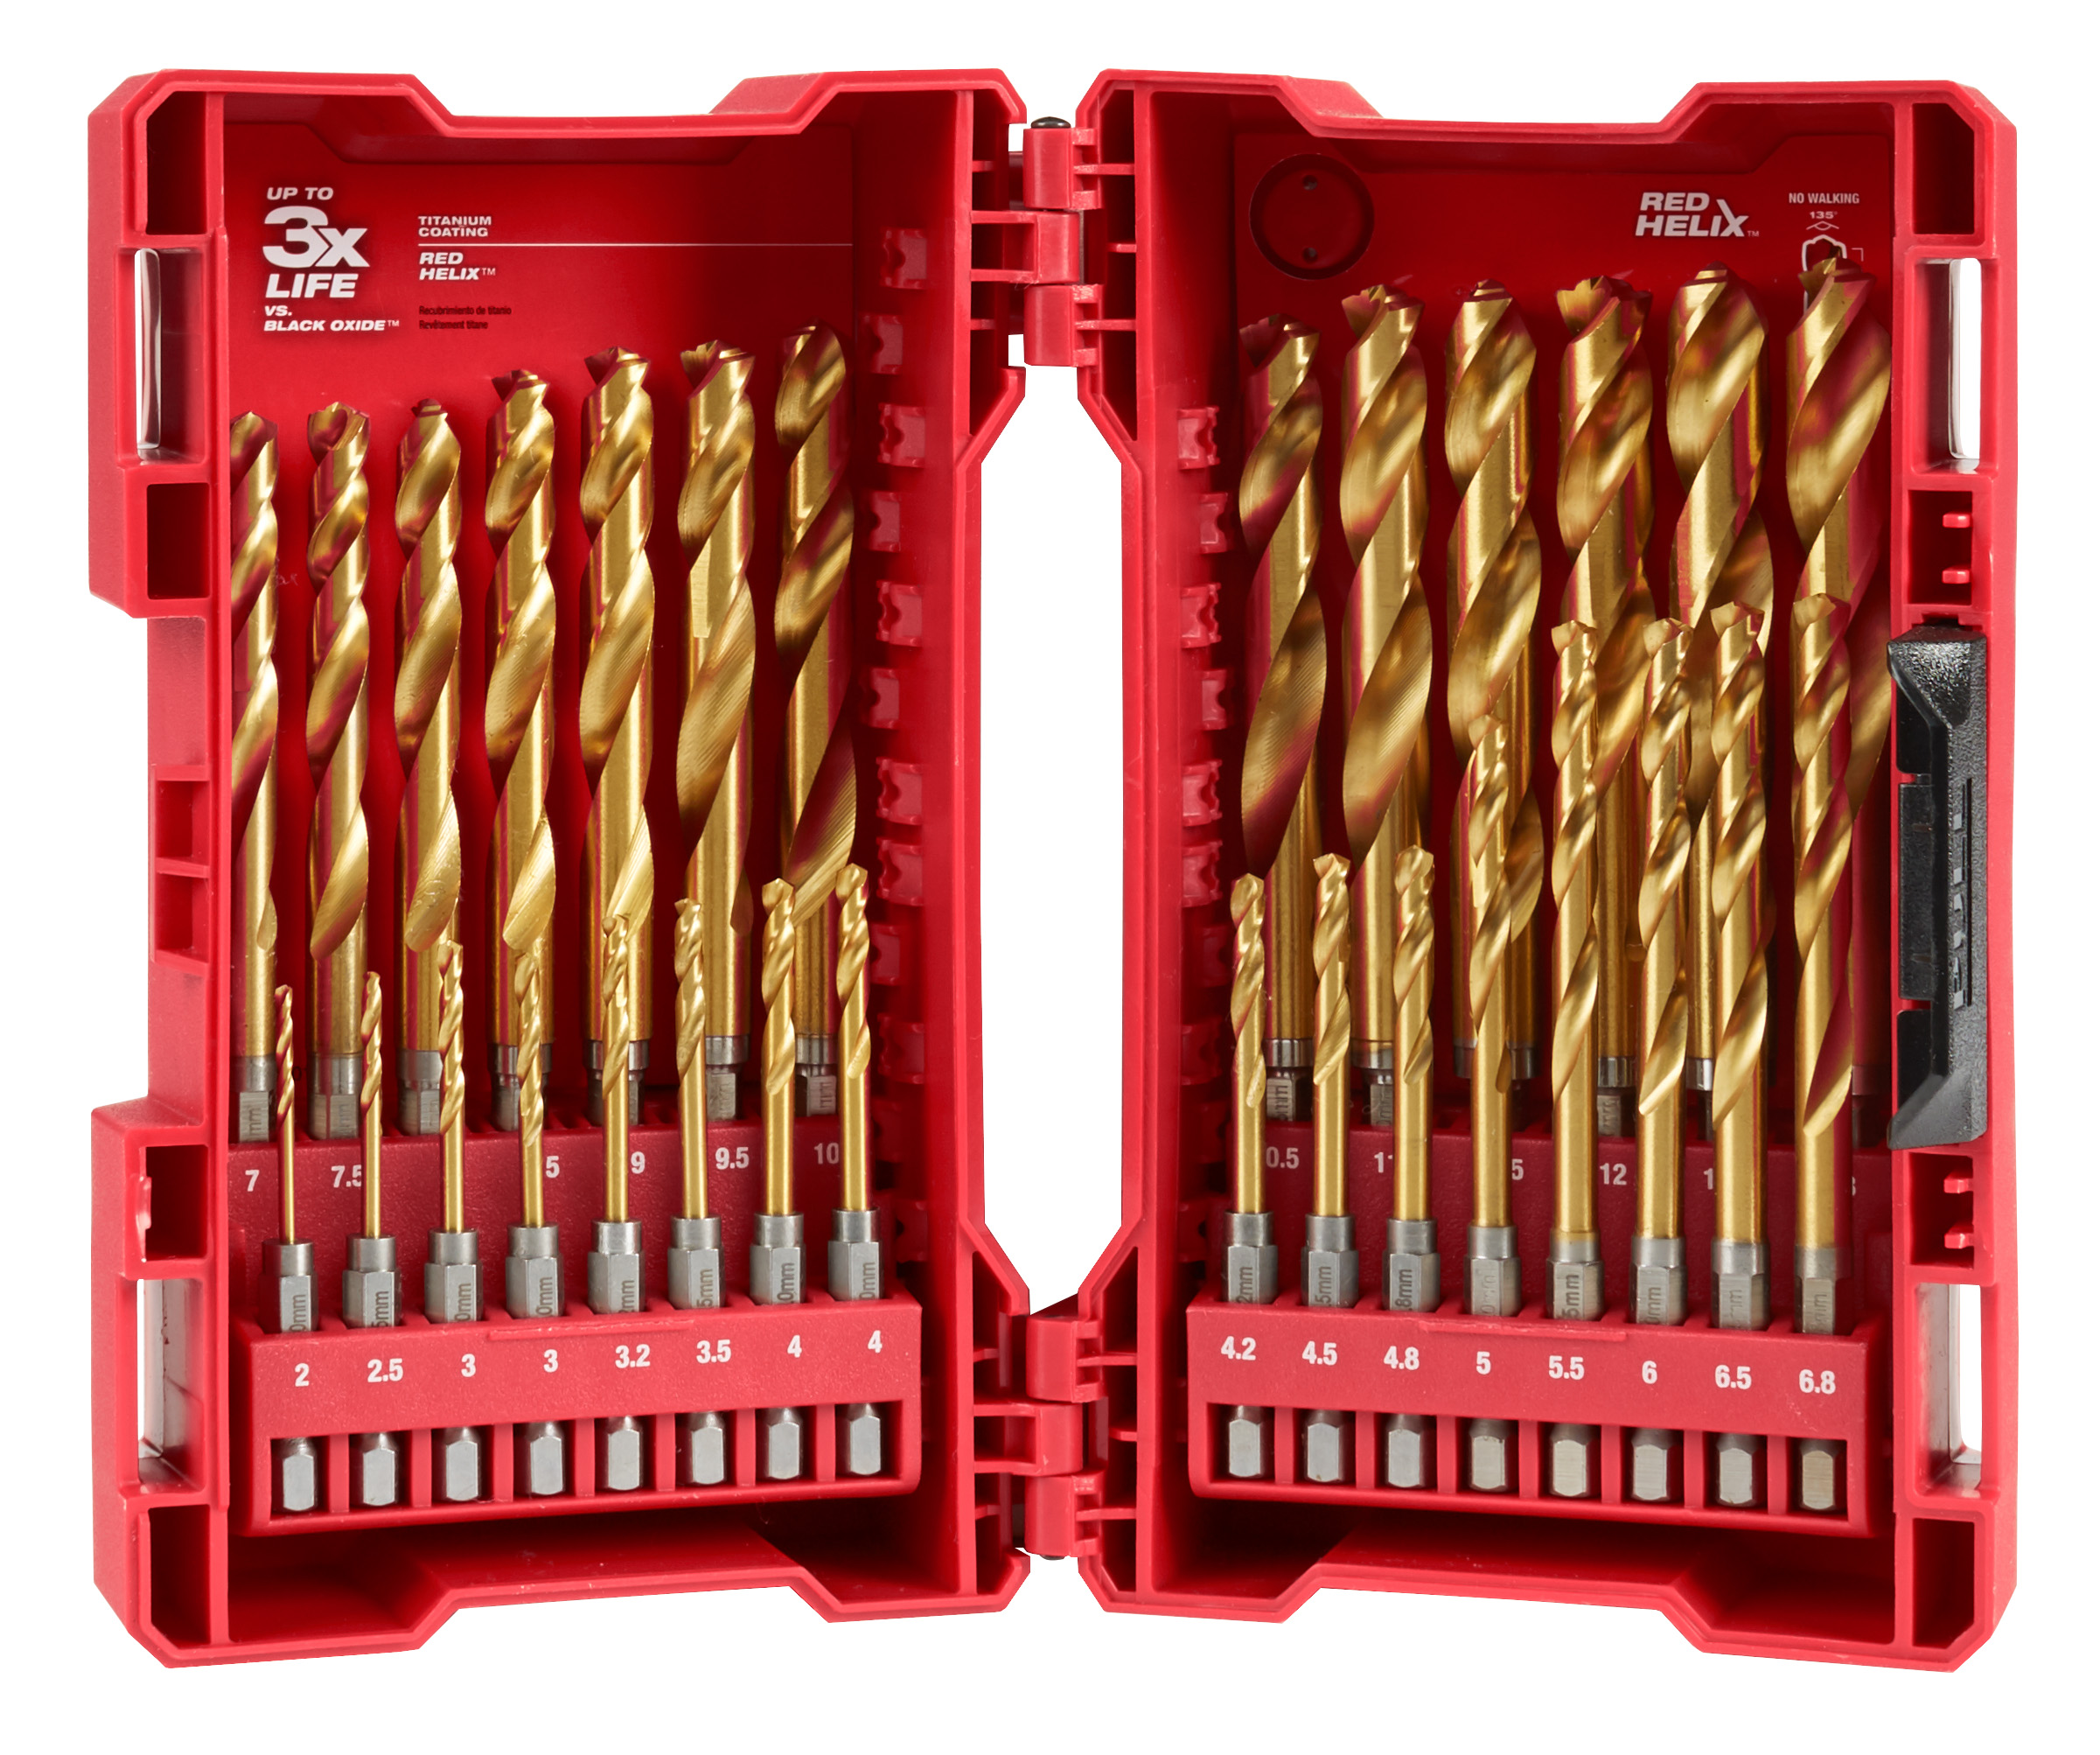 Milwaukee® SHOCKWAVE™ RED HELIX™ 48-89-4862 Drill Bit Set, 2 mm Min Drill Bit, 13 mm Max Drill Bit, 135 deg Drill Point Angle, 29 Pieces, Titanium Coated